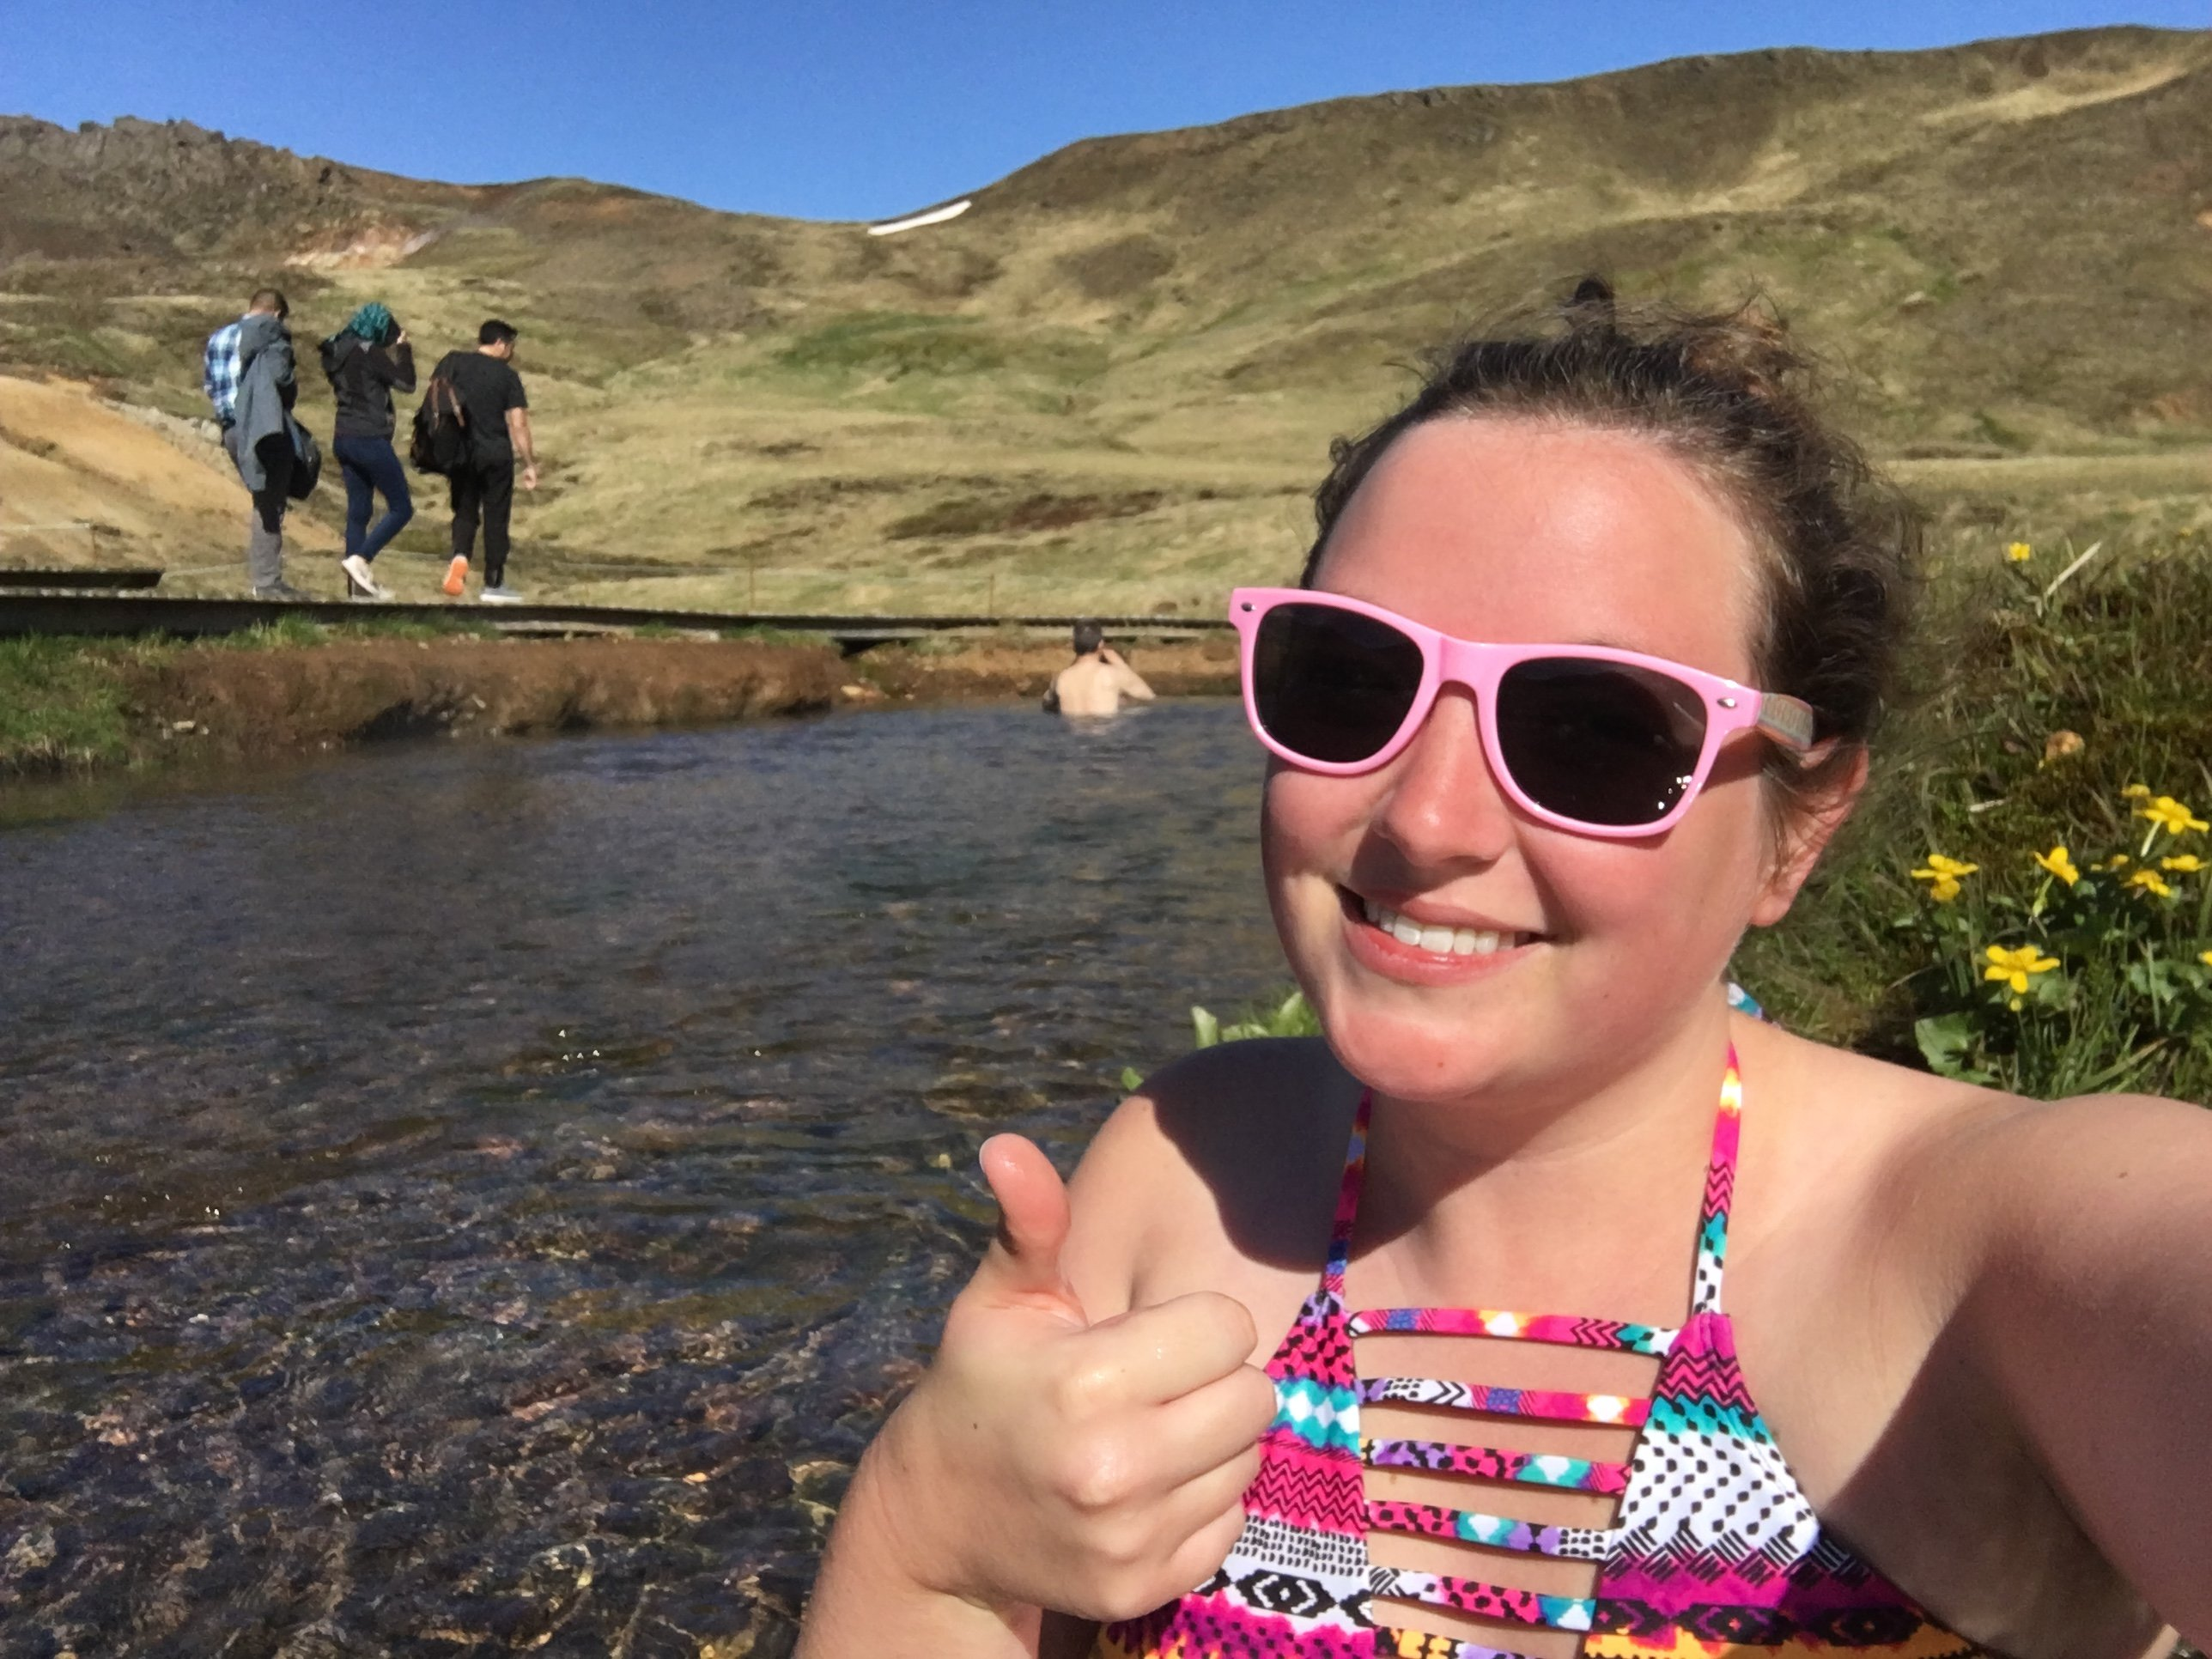 Everything you need to know before visiting Reykjadalur Hot Springs: How to get there, what to bring, what to expect and more!